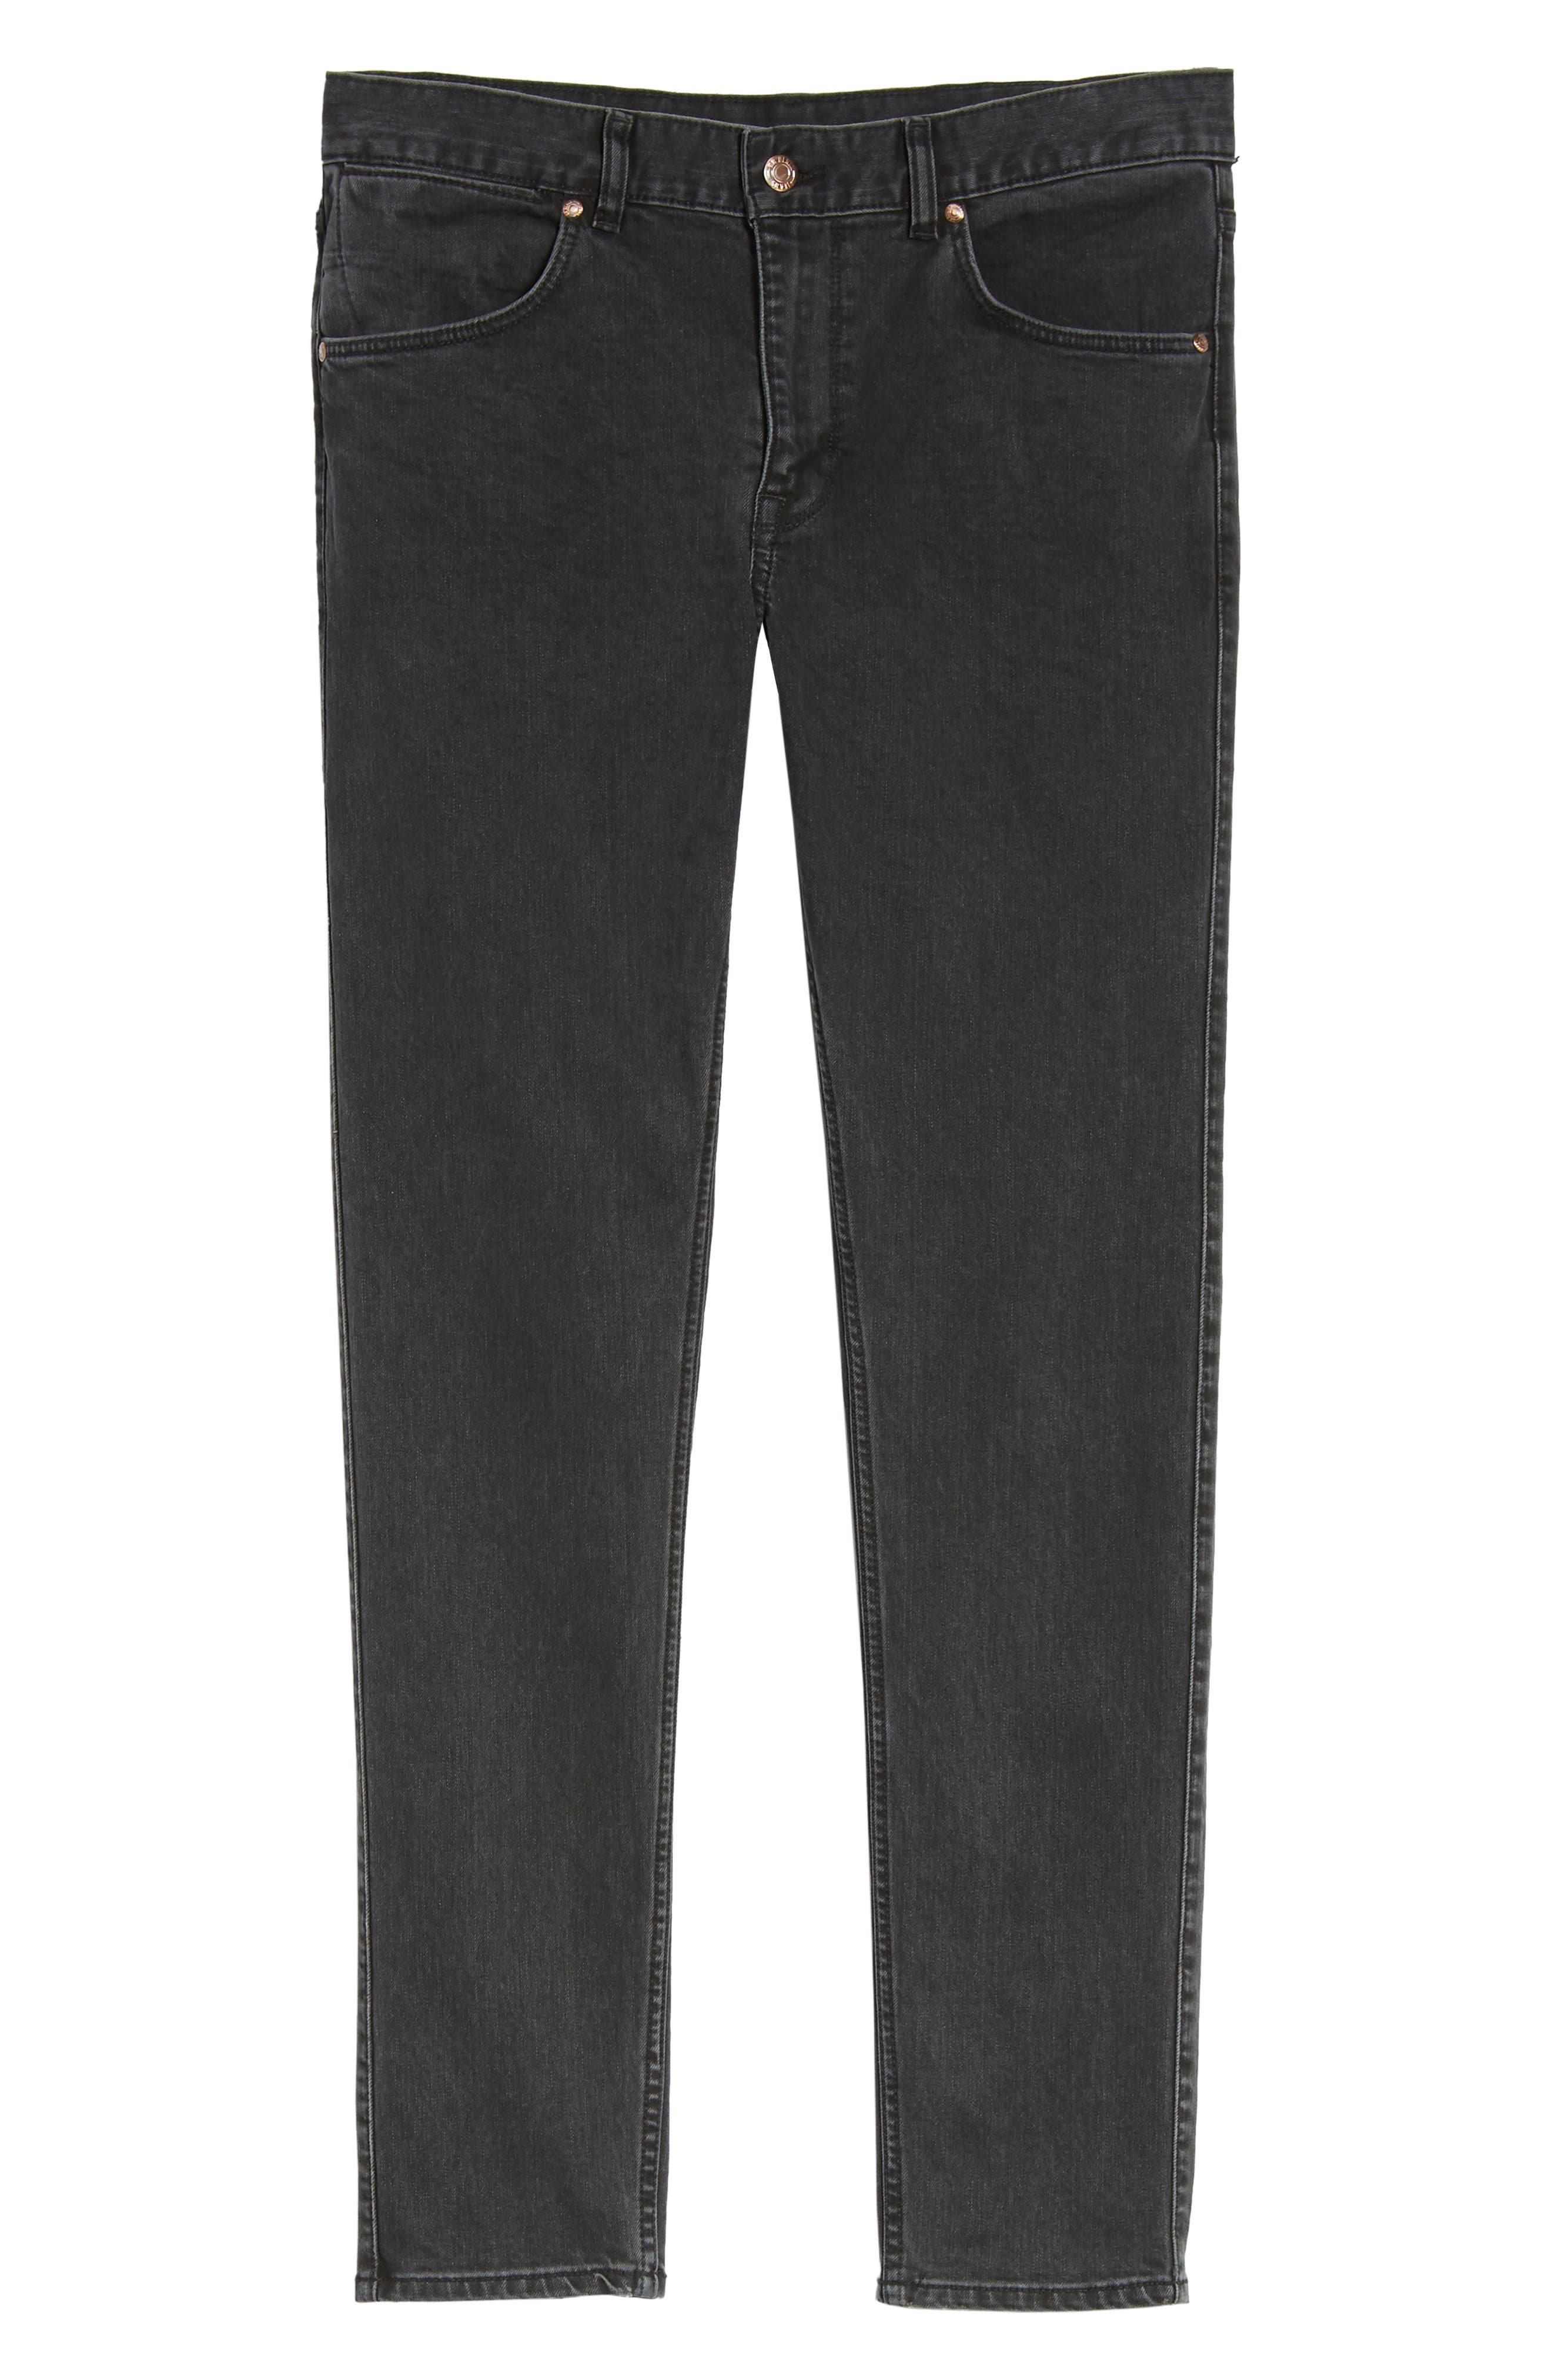 Clark Slim Straight Leg Jeans,                             Alternate thumbnail 6, color,                             001